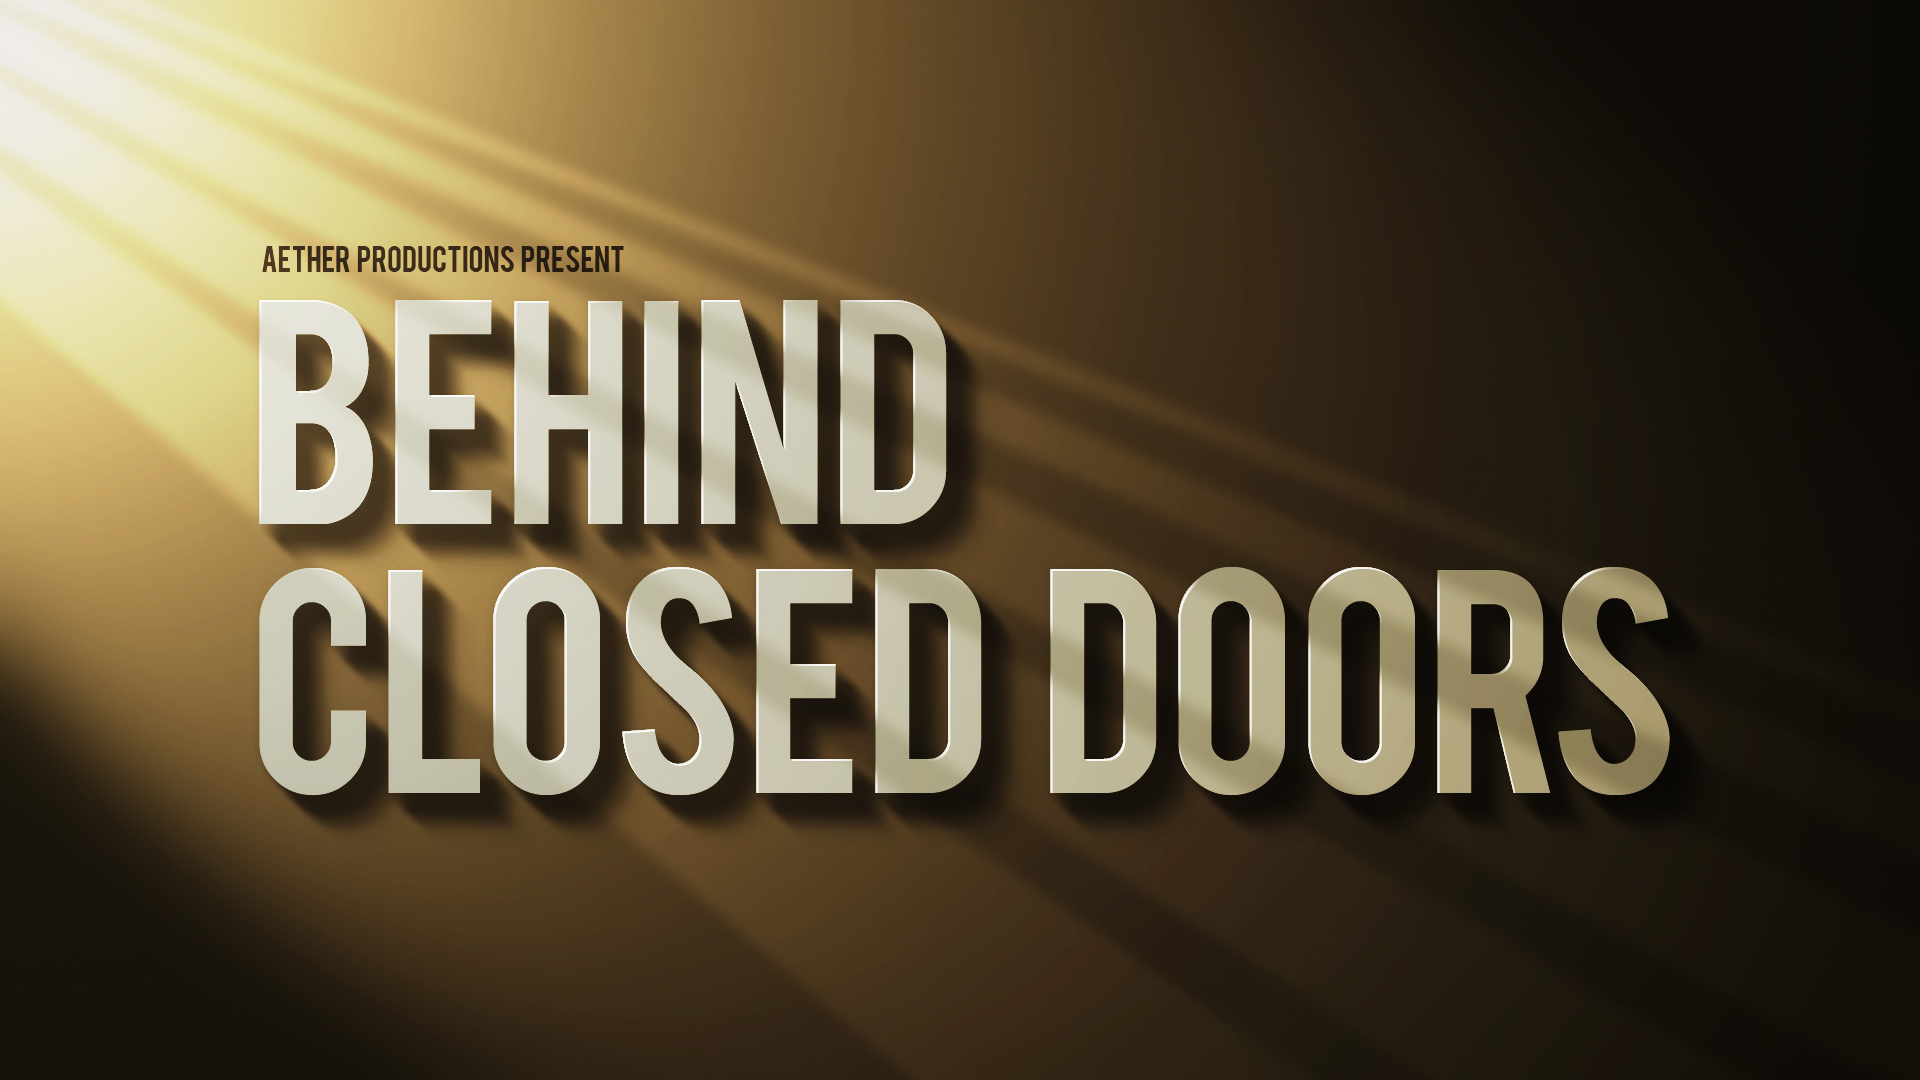 our latest short film behind closed doors the idea